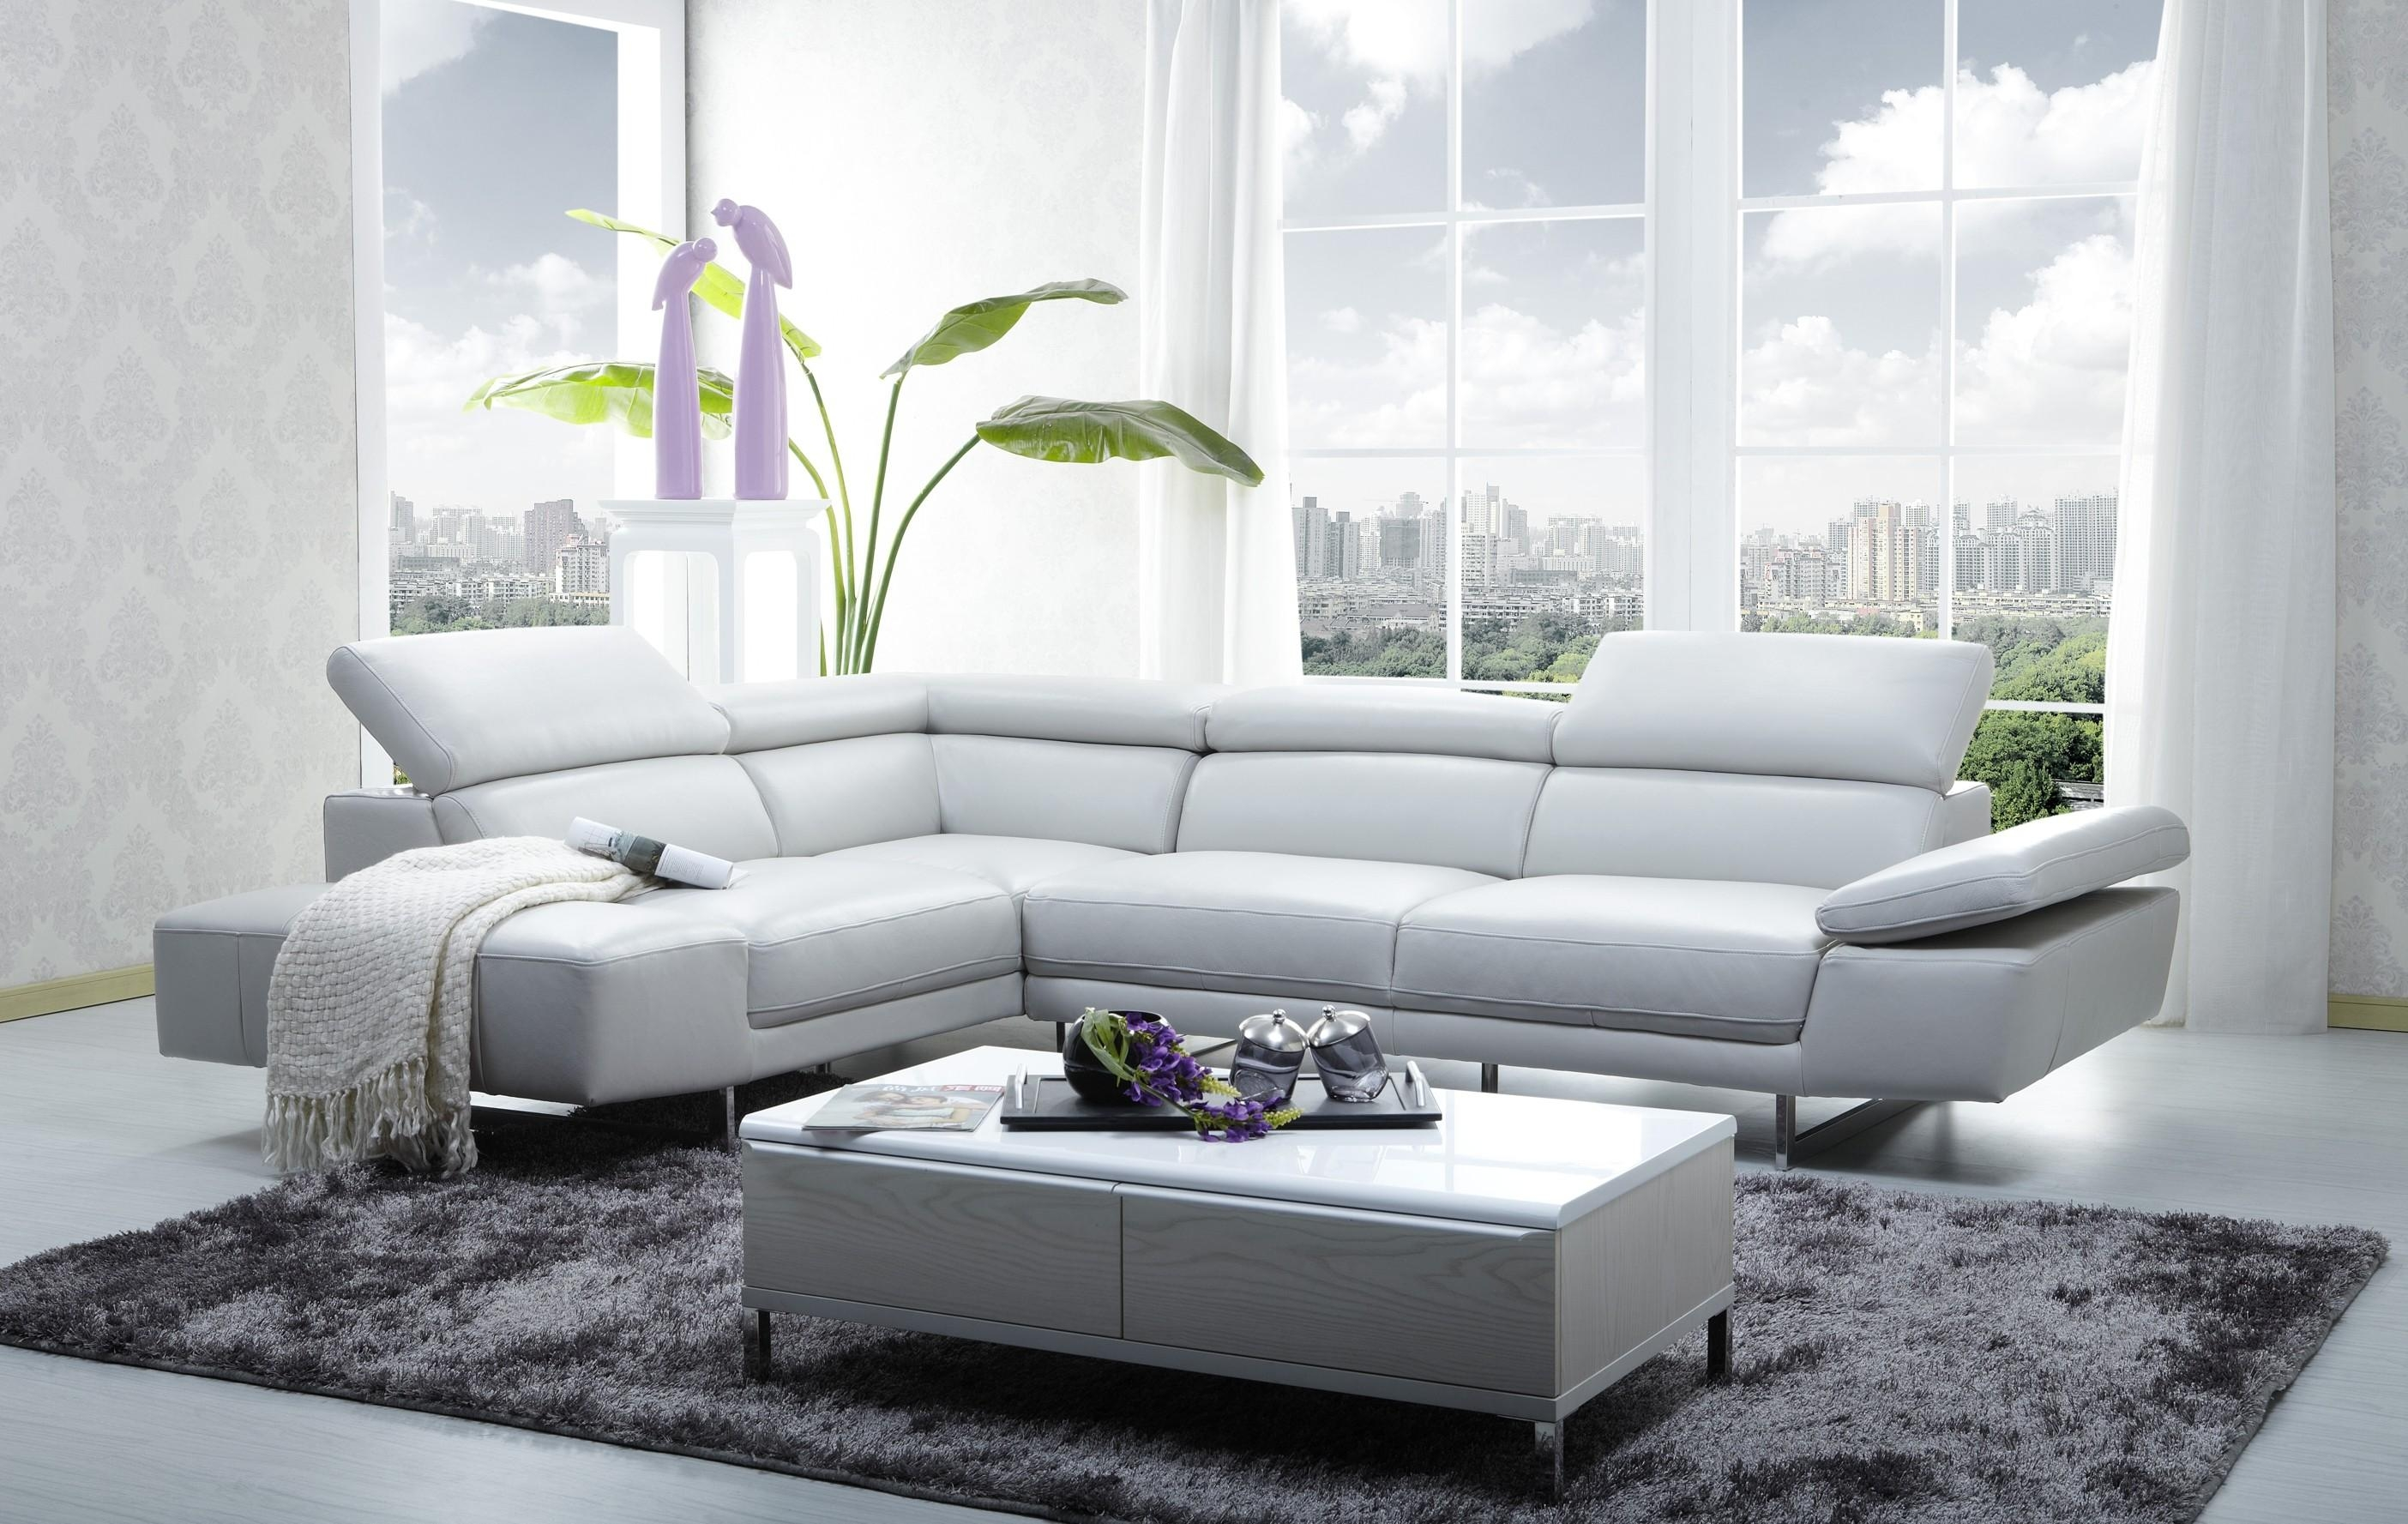 Contemporary White Italian Leather Sectional Sofa – S3Net For Italian Leather Sectionals Contemporary (View 2 of 20)